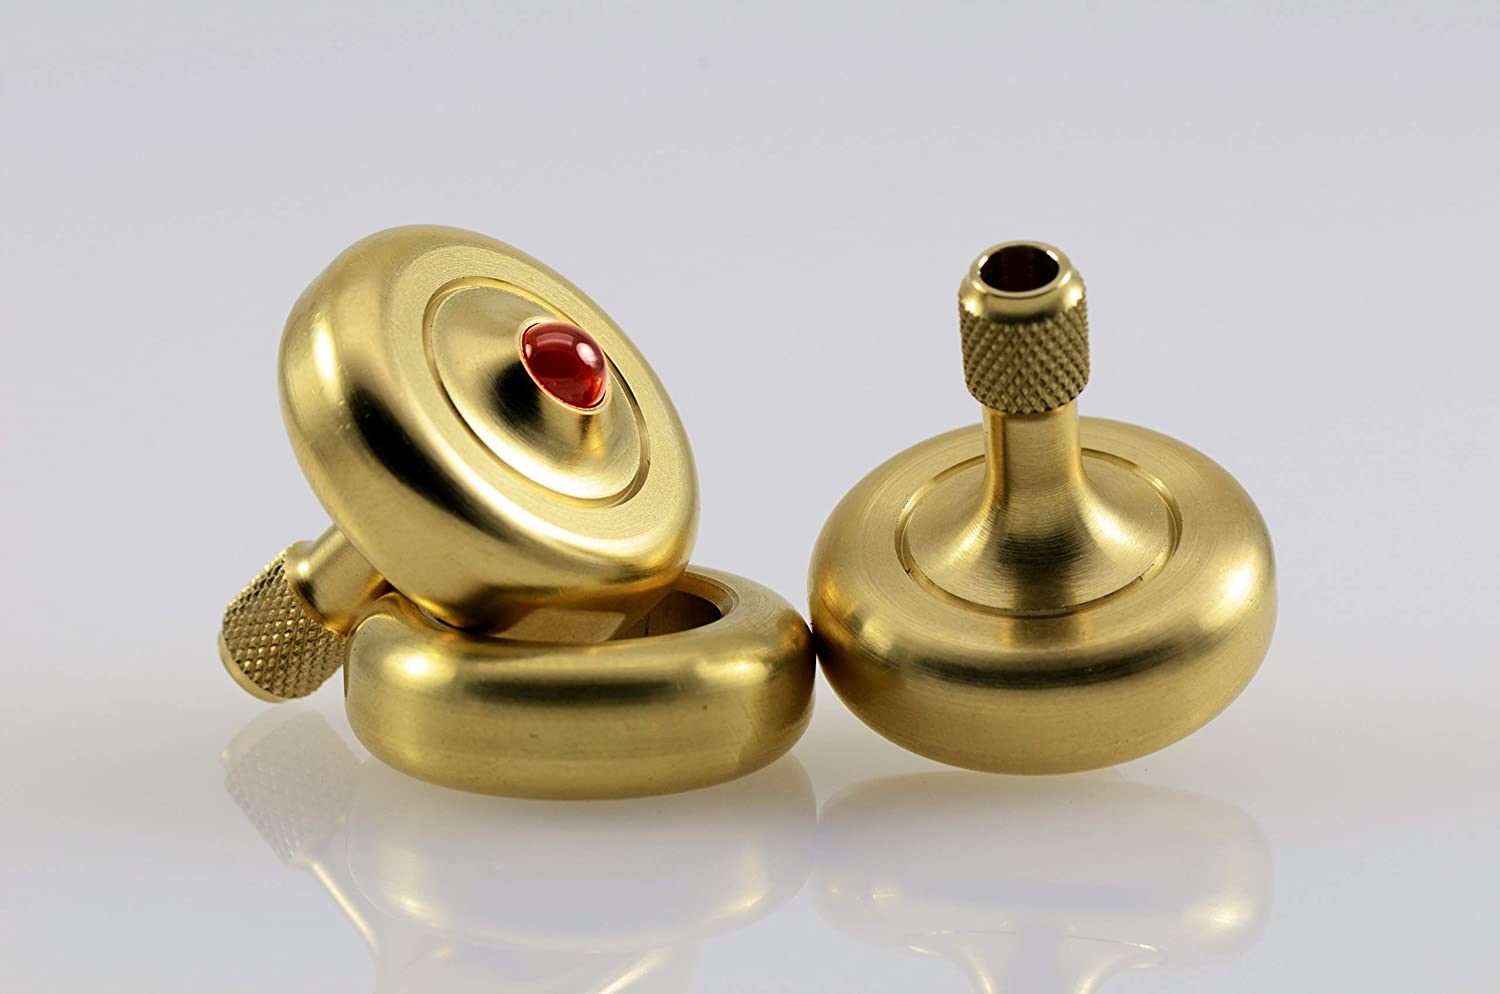 PROMETHEUS LIGHTS Solid Brass Ruby Tipped Spinning Top